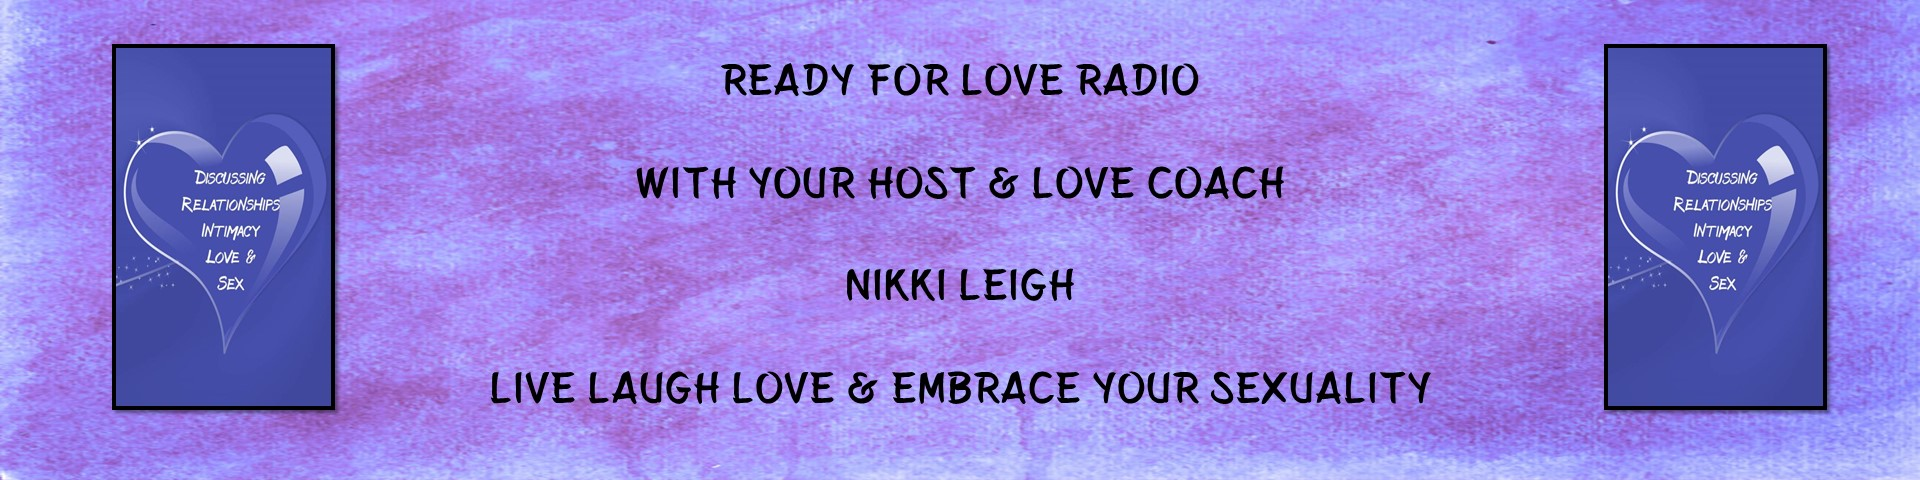 Ready For Love Radio